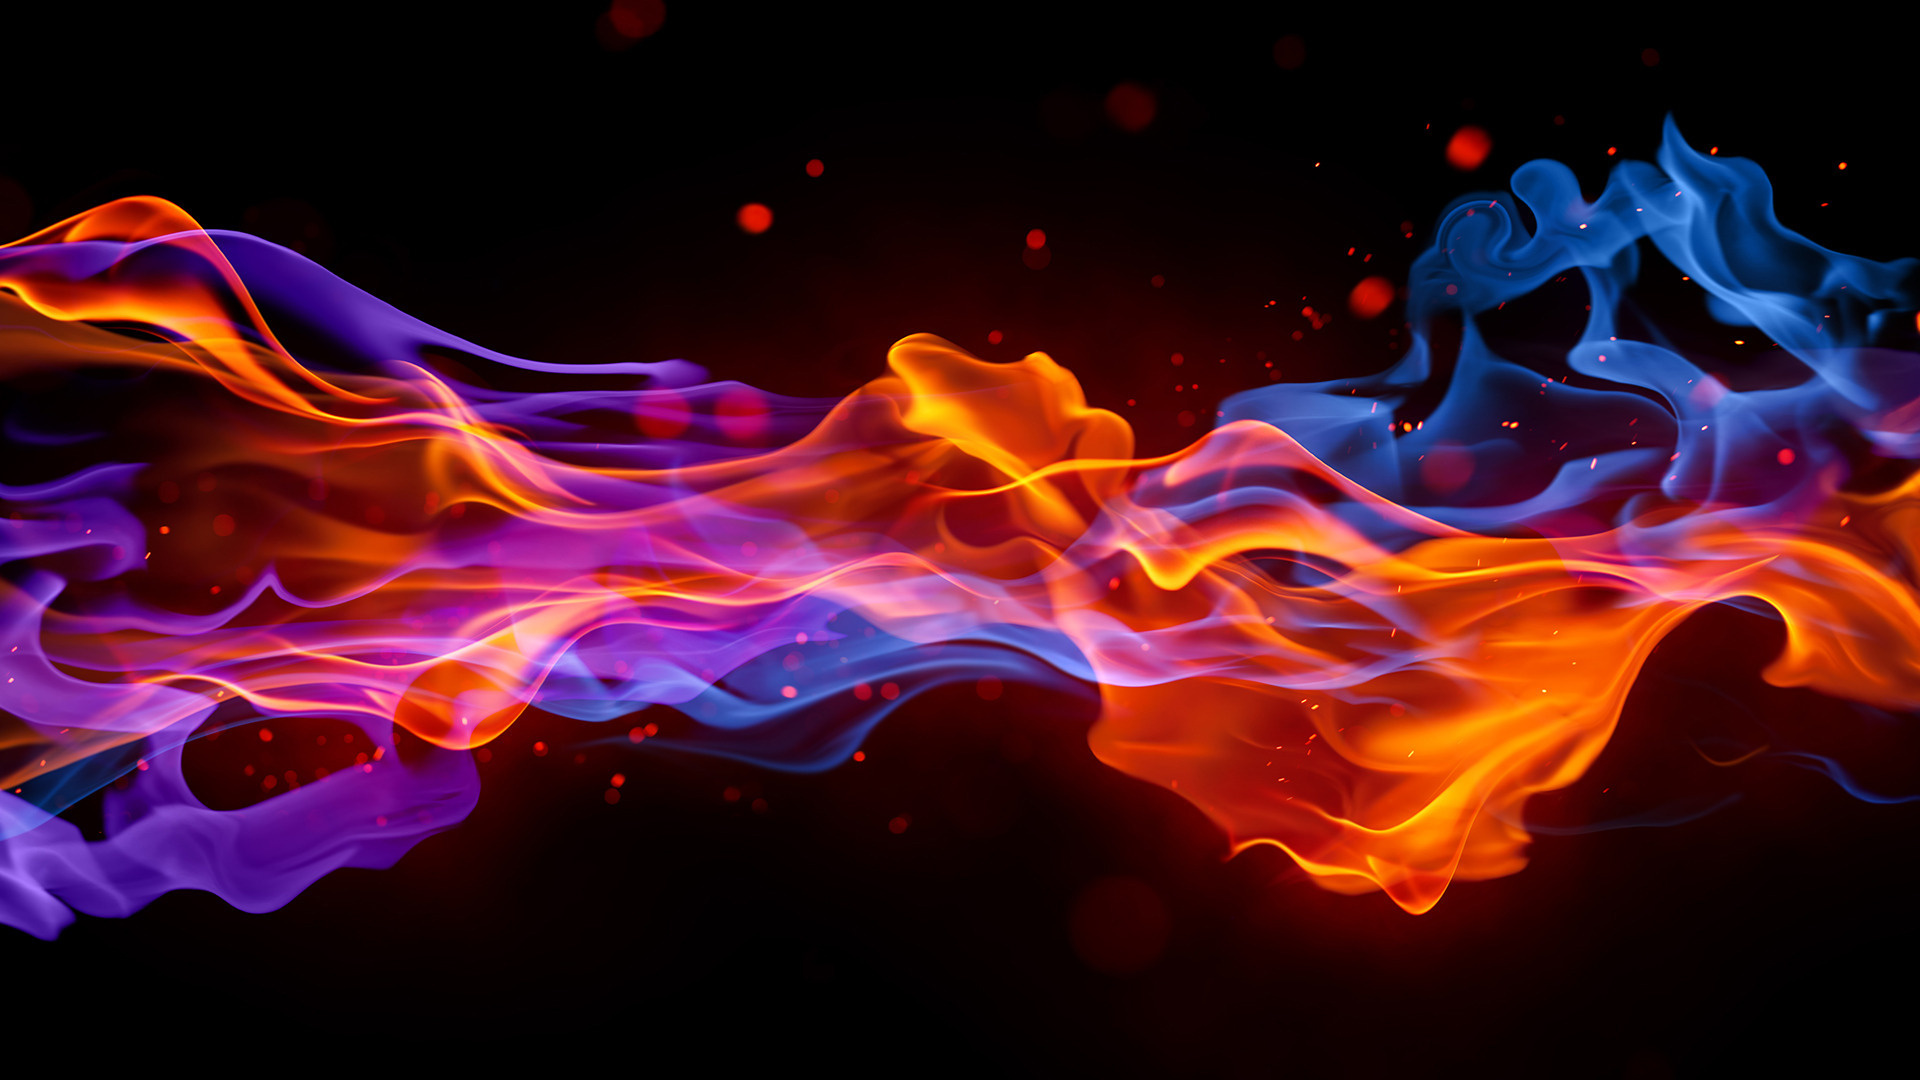 Abstract Wallpaper Cool Photos For Macbook 218 Backgrounds